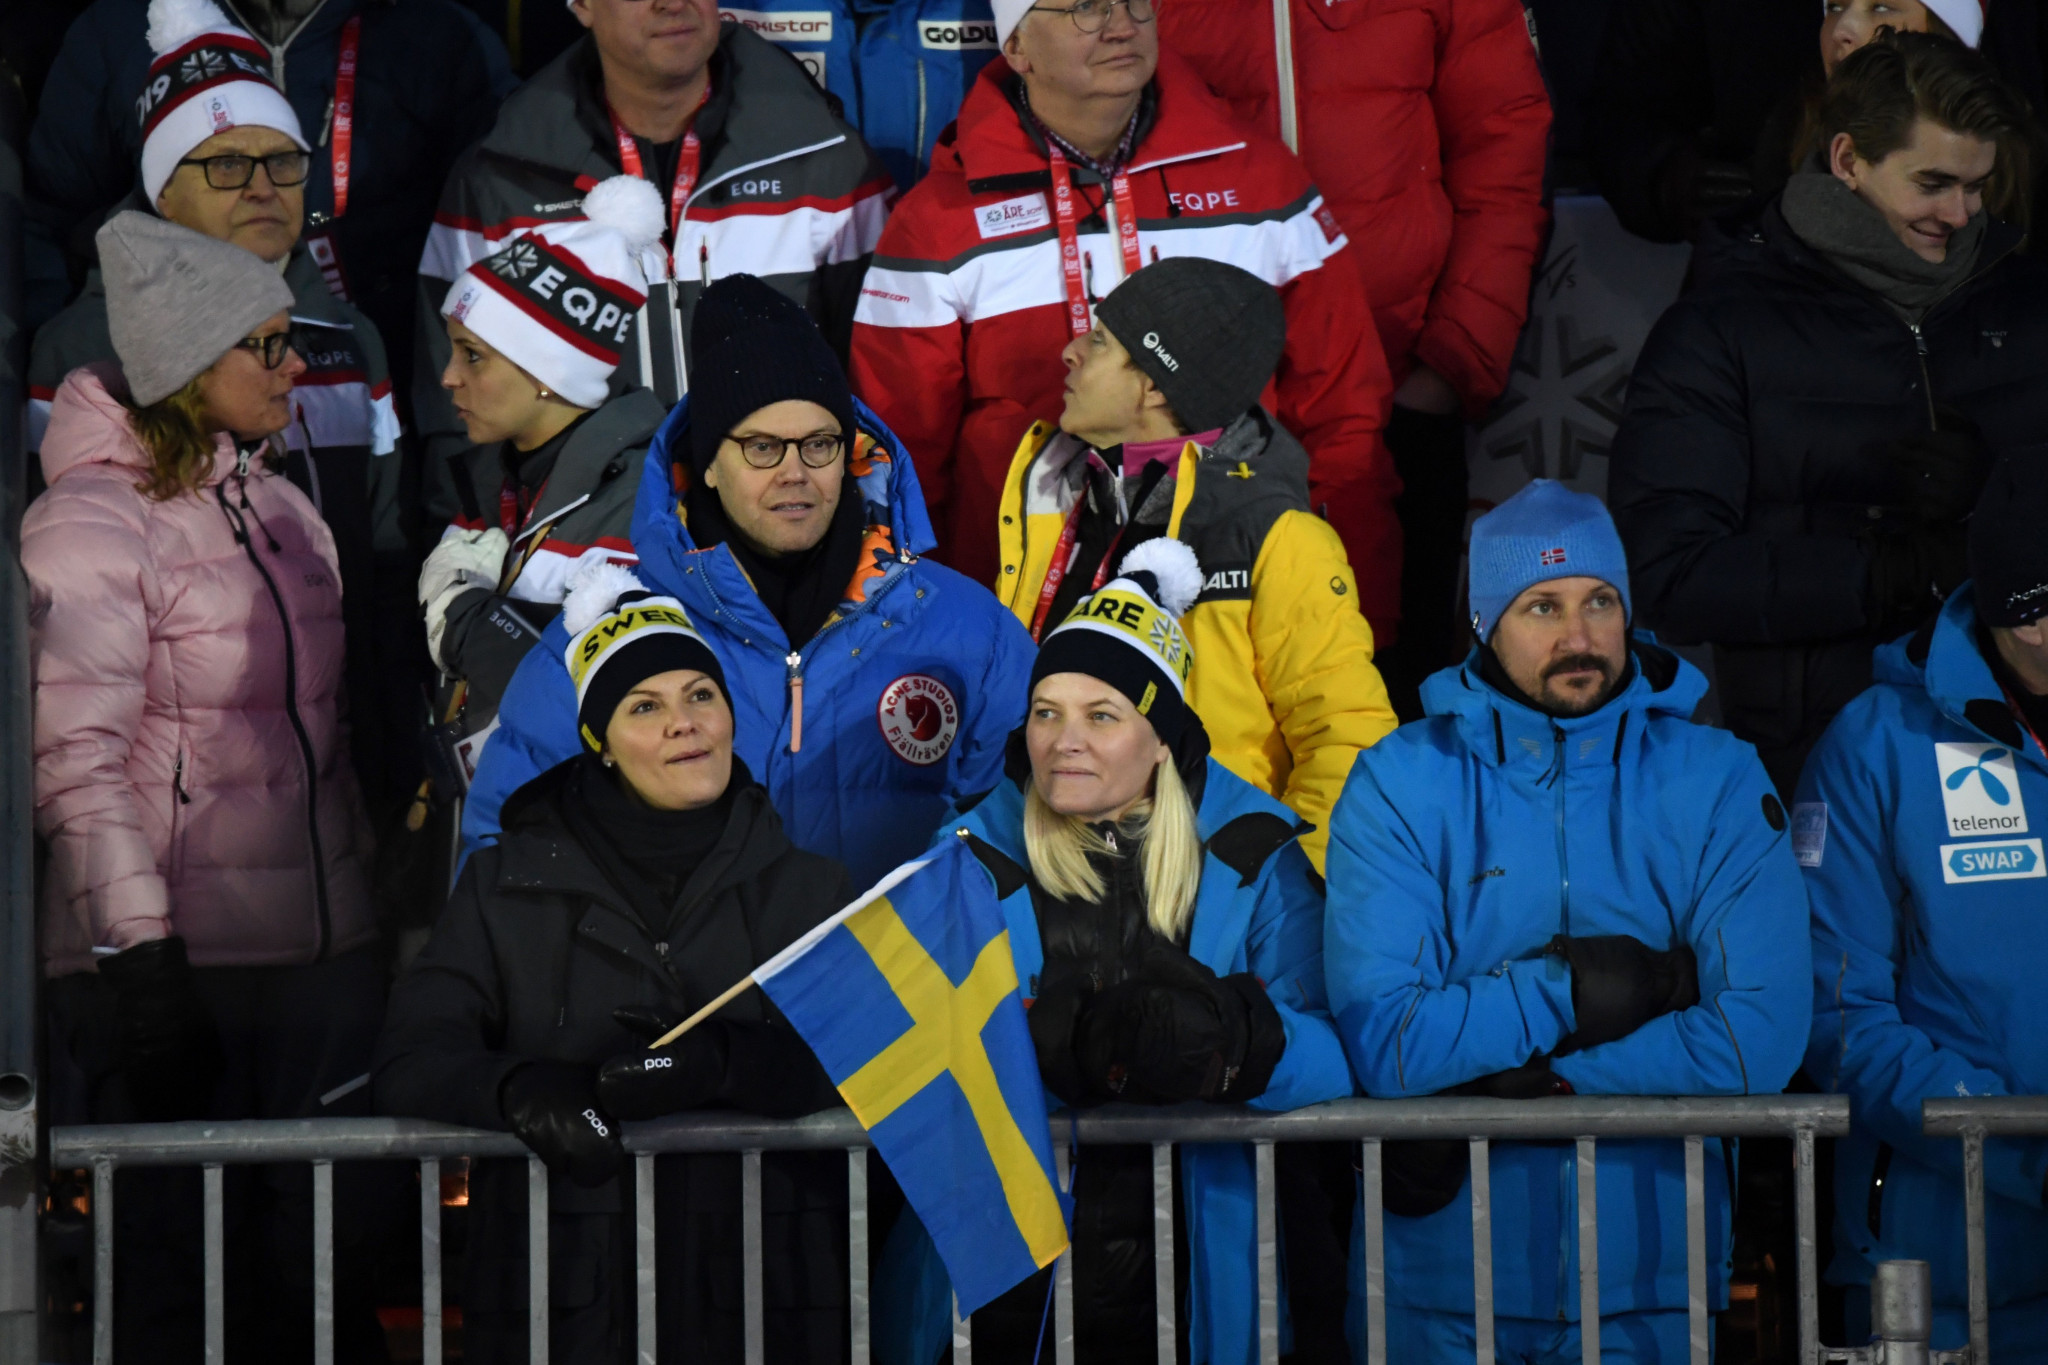 Swedish royalty was present to watch competition in Åre ©Getty Images